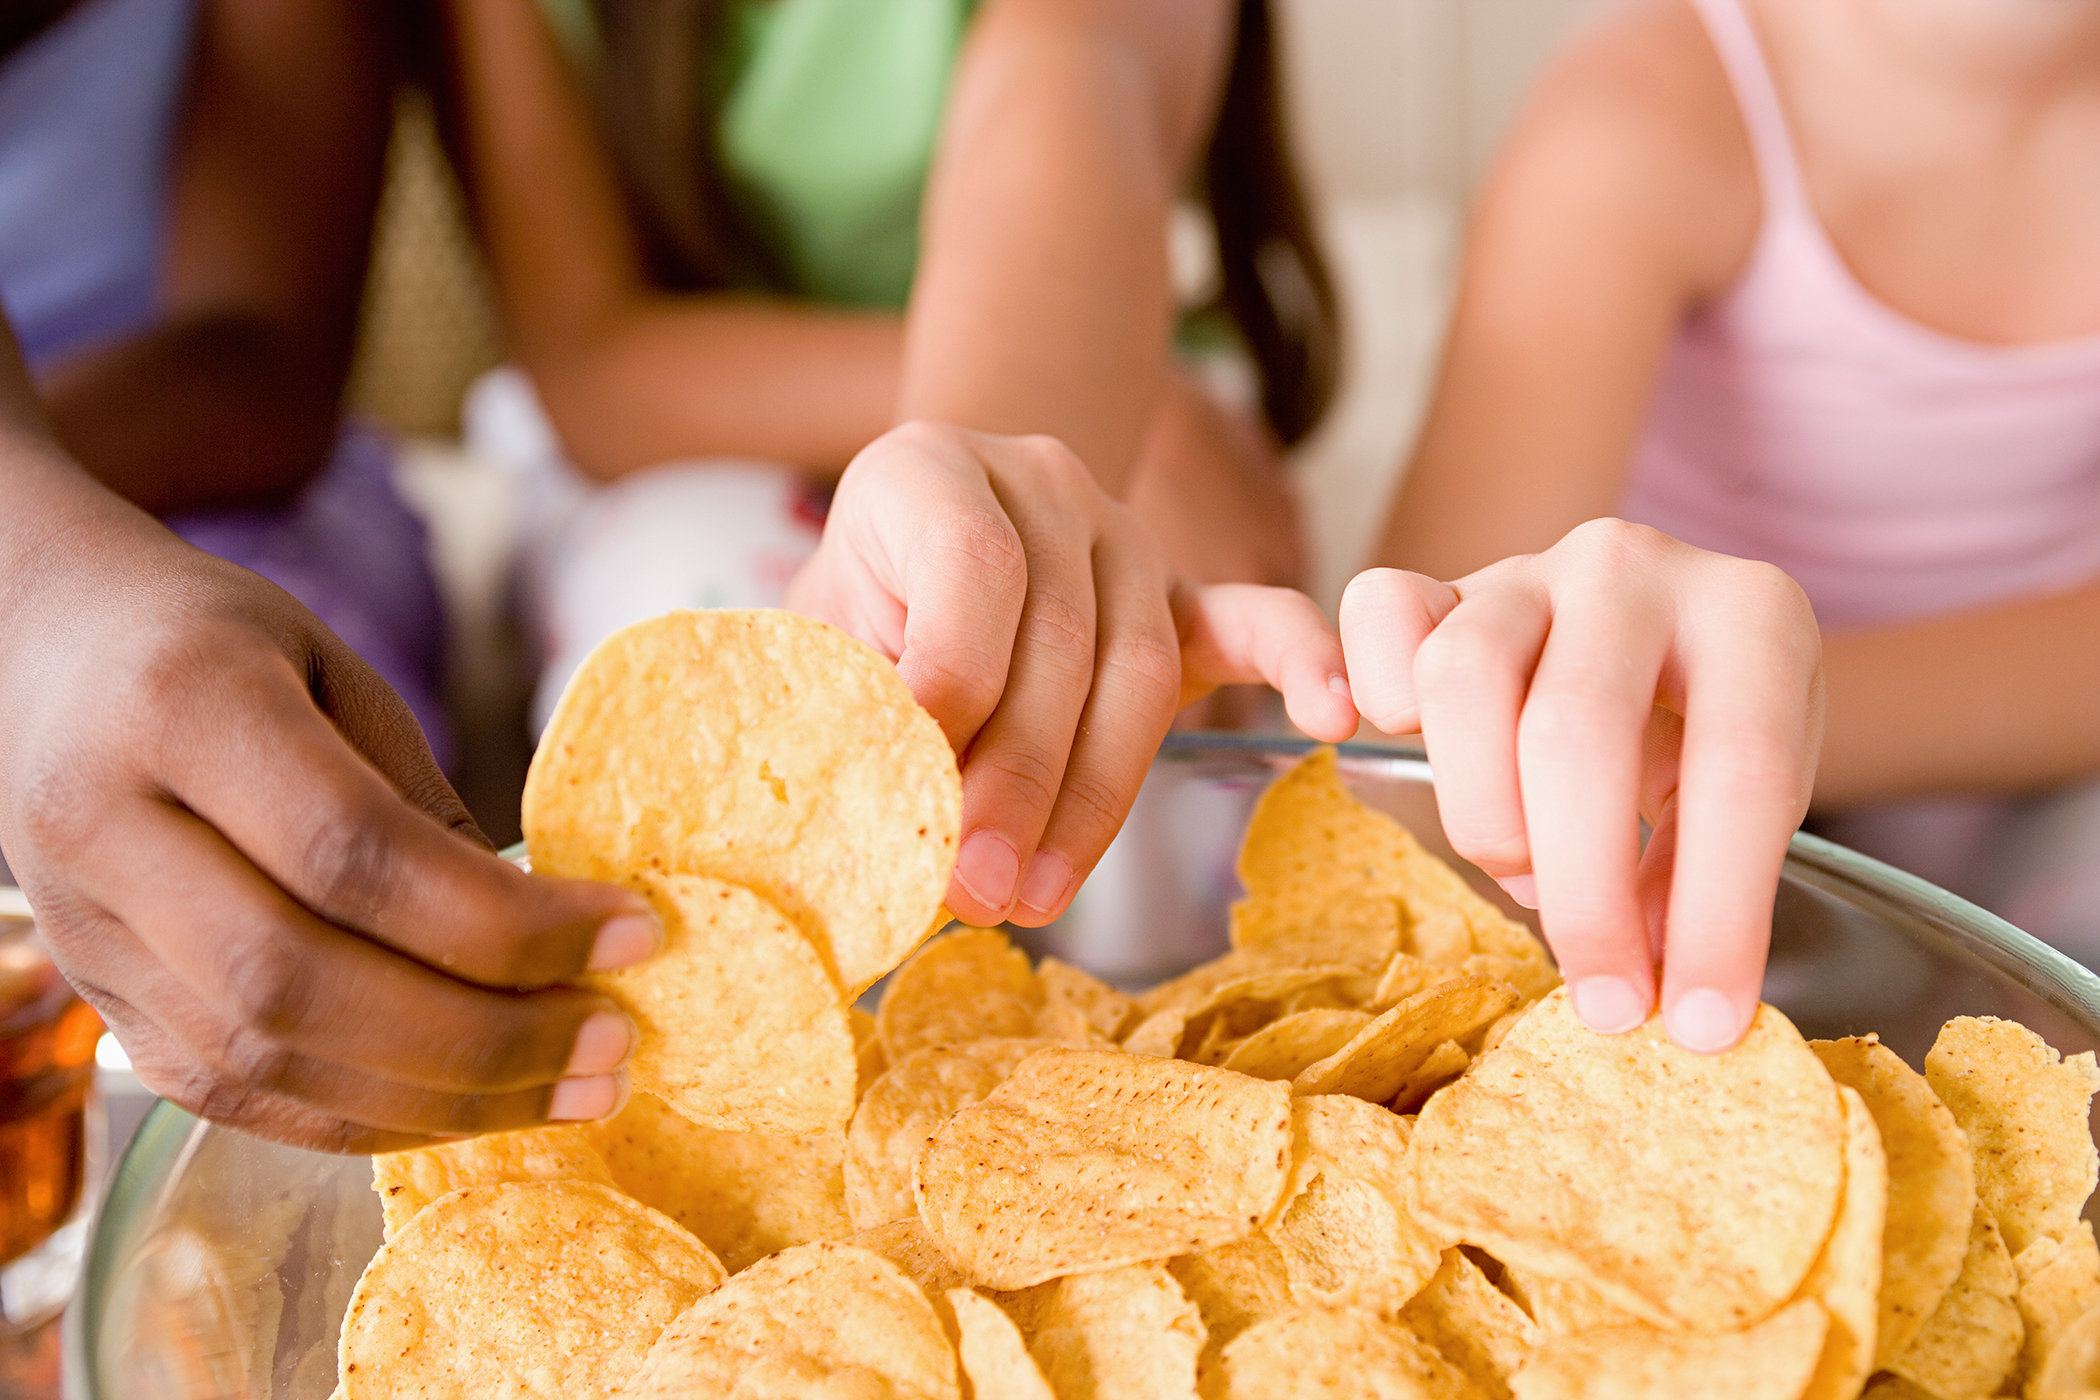 hands reaching for chips